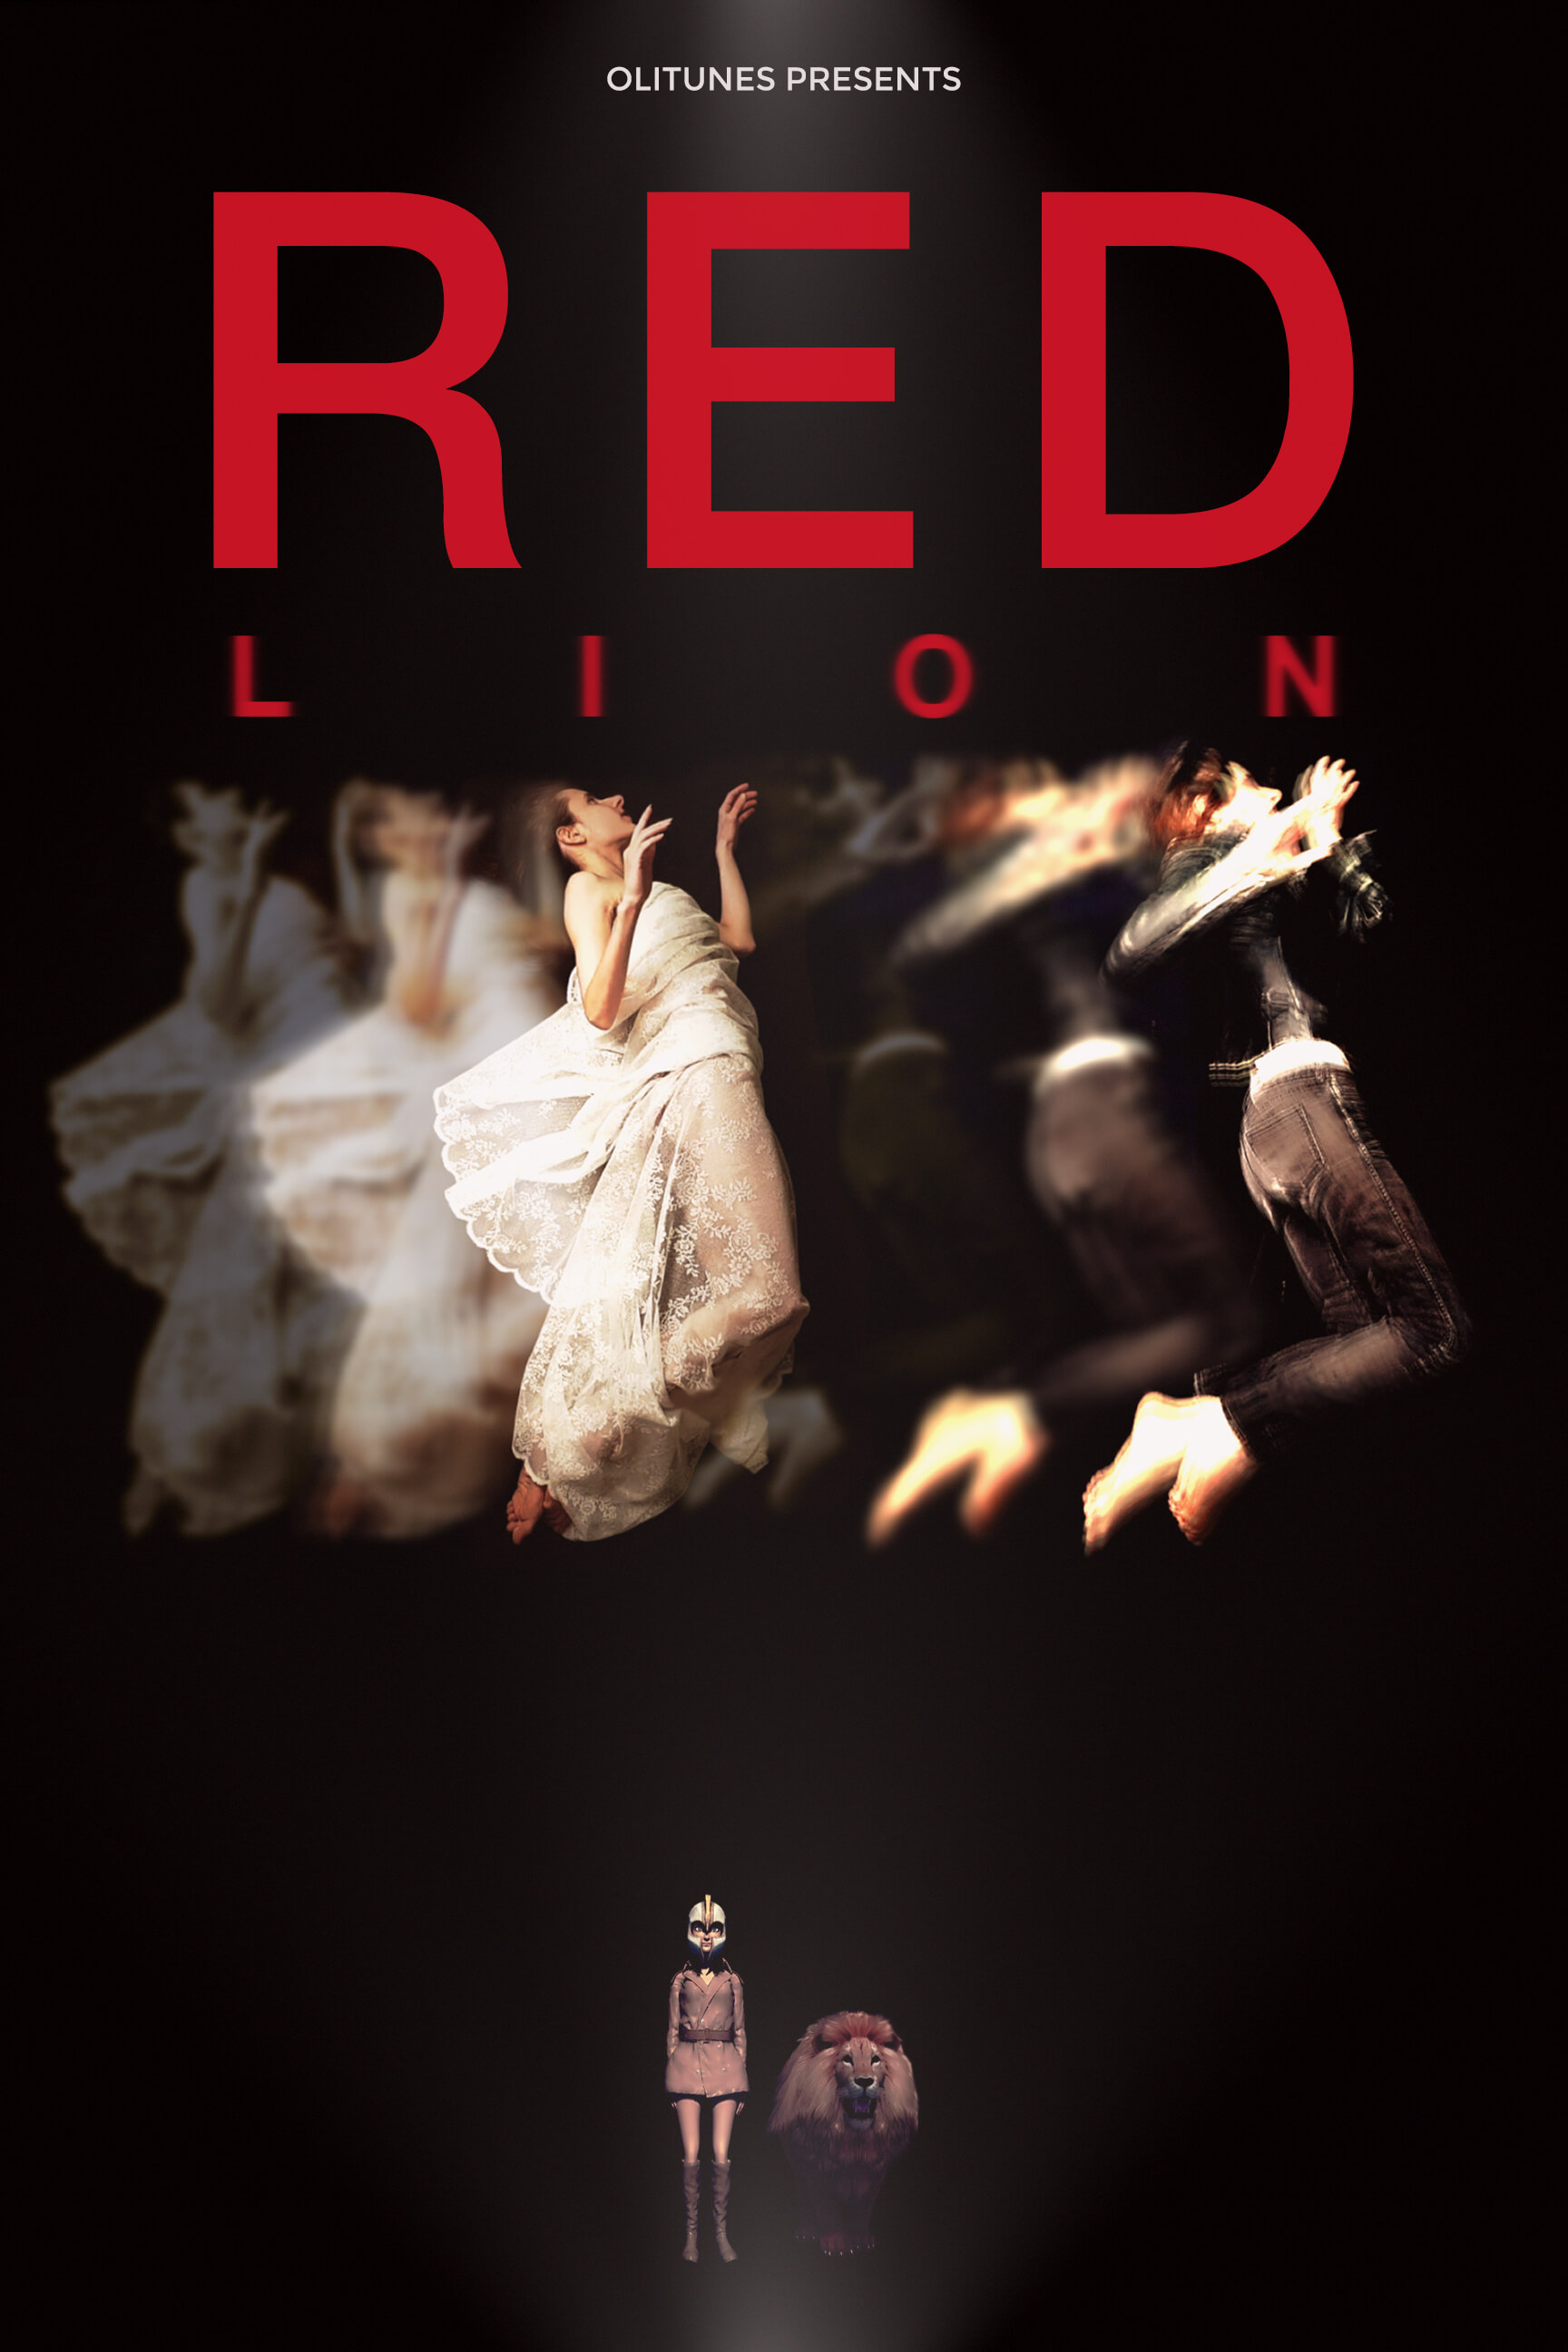 RED LION by Oh. Olivia Hadjiioannou